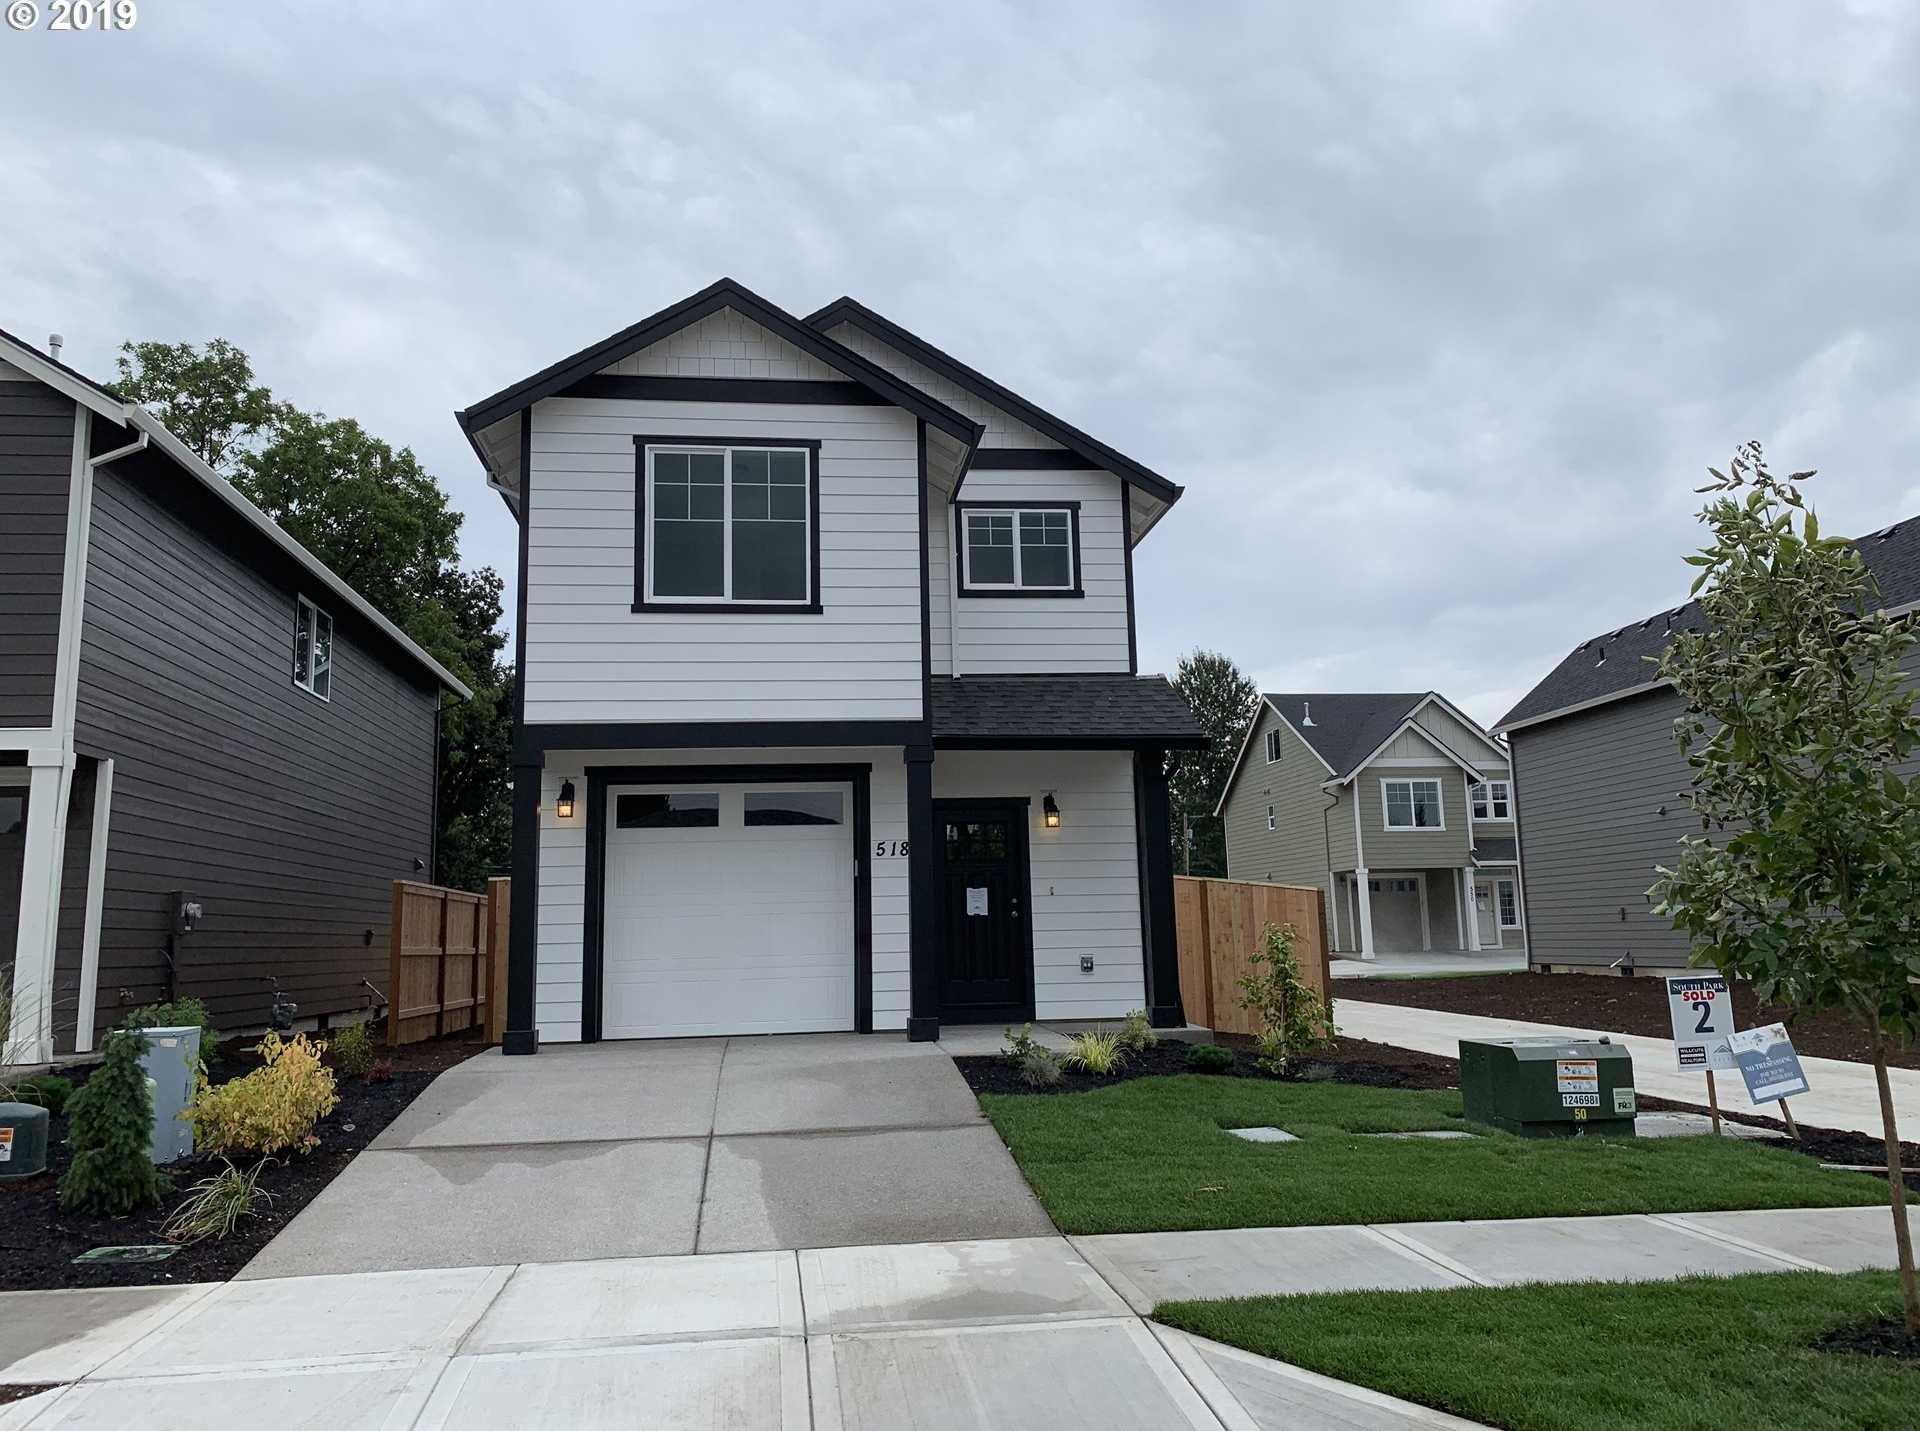 $334,900 - 3Br/3Ba -  for Sale in South Park, Newberg